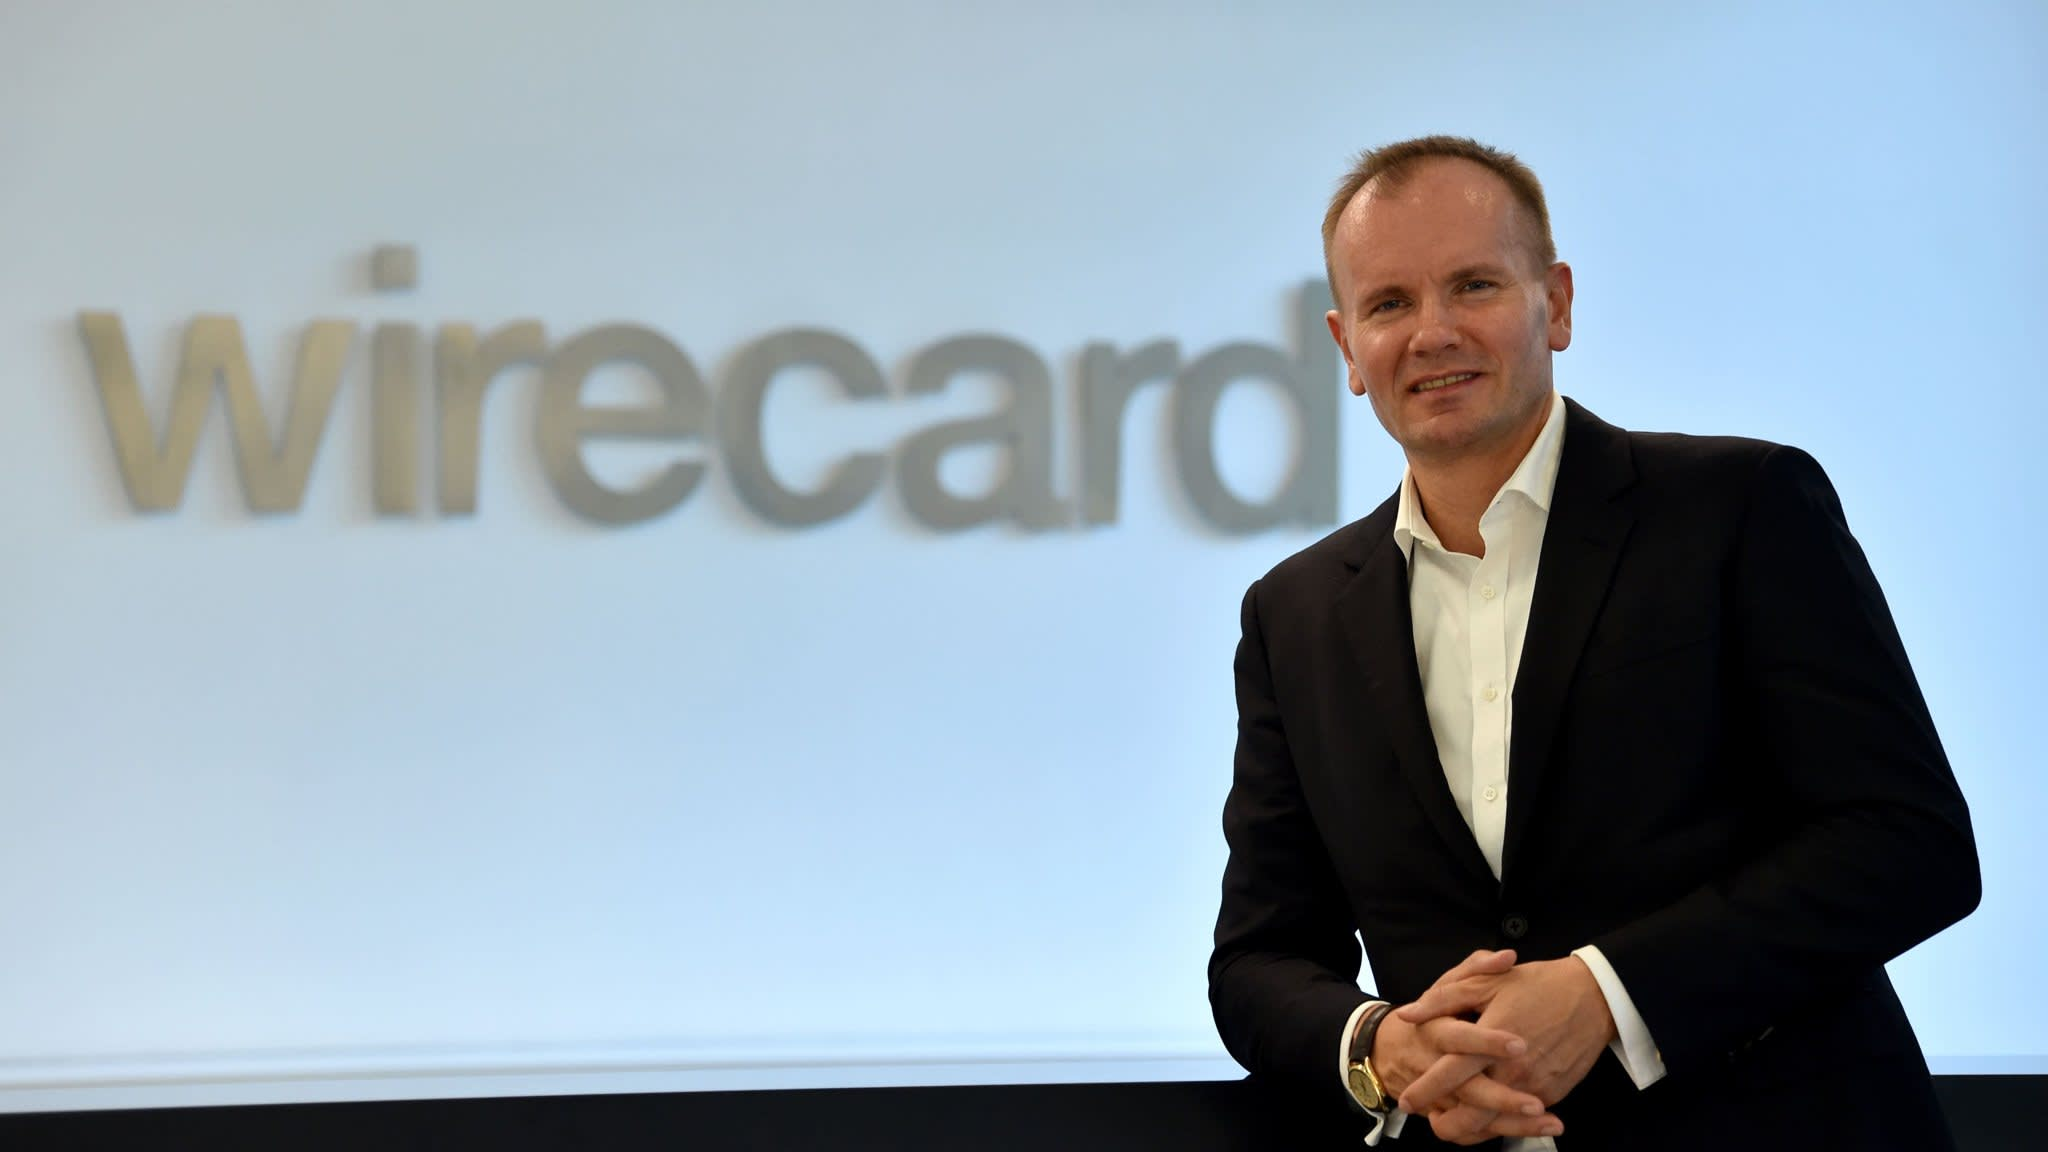 Wirecard's meteoric rise prompts questions